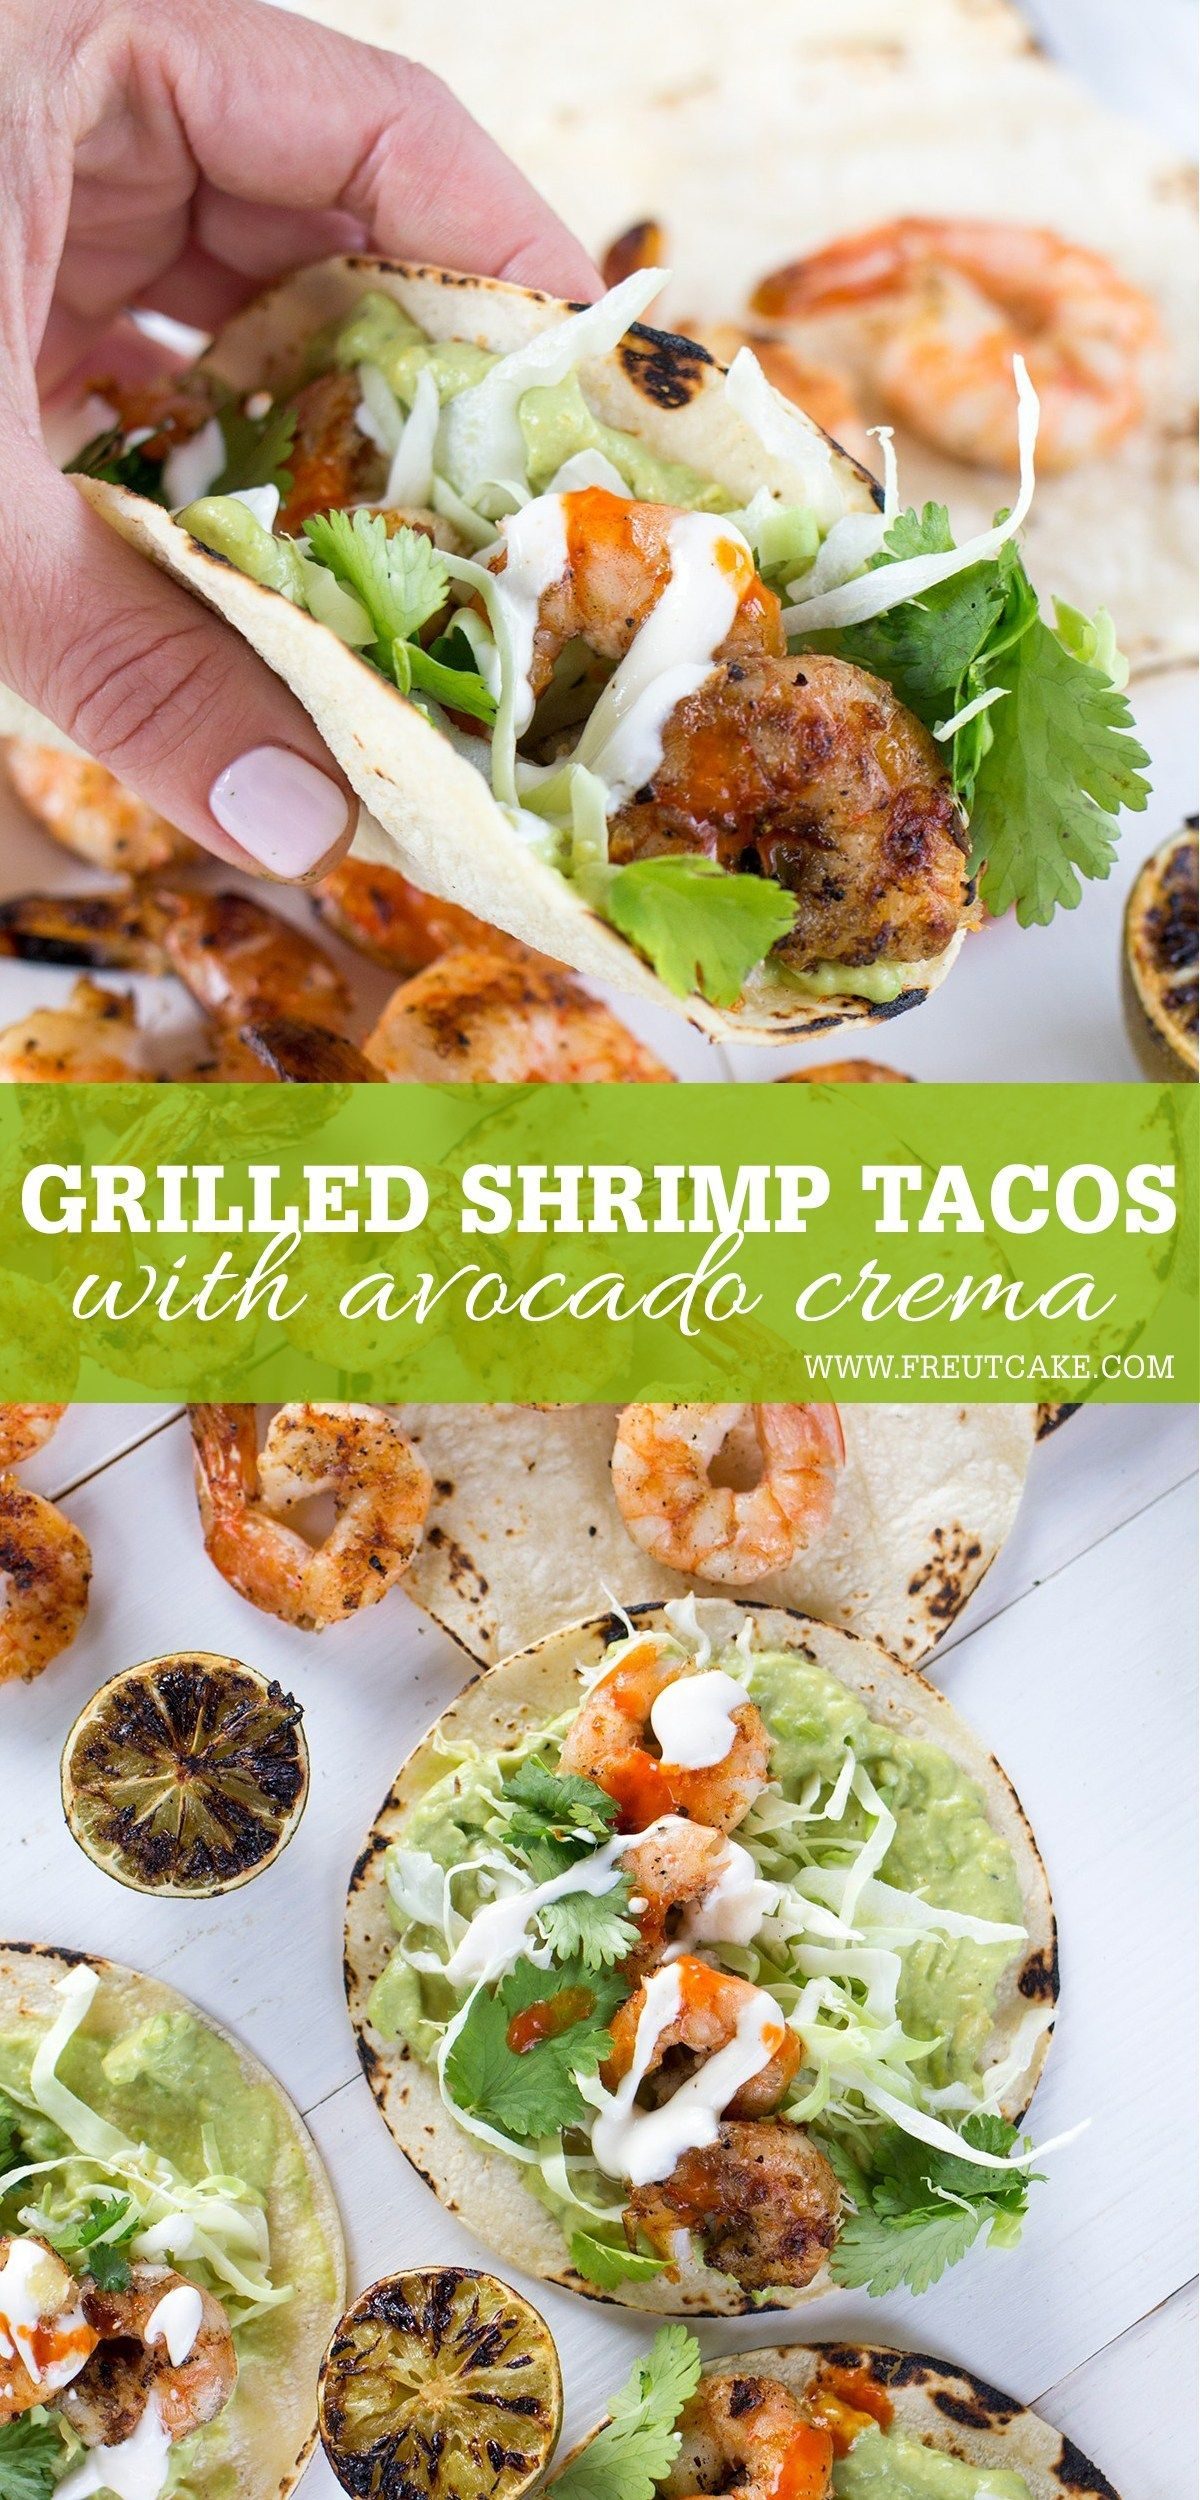 Grilled Shrimp Tacos with Avocado Crema - Freutcake #grilledshrimp